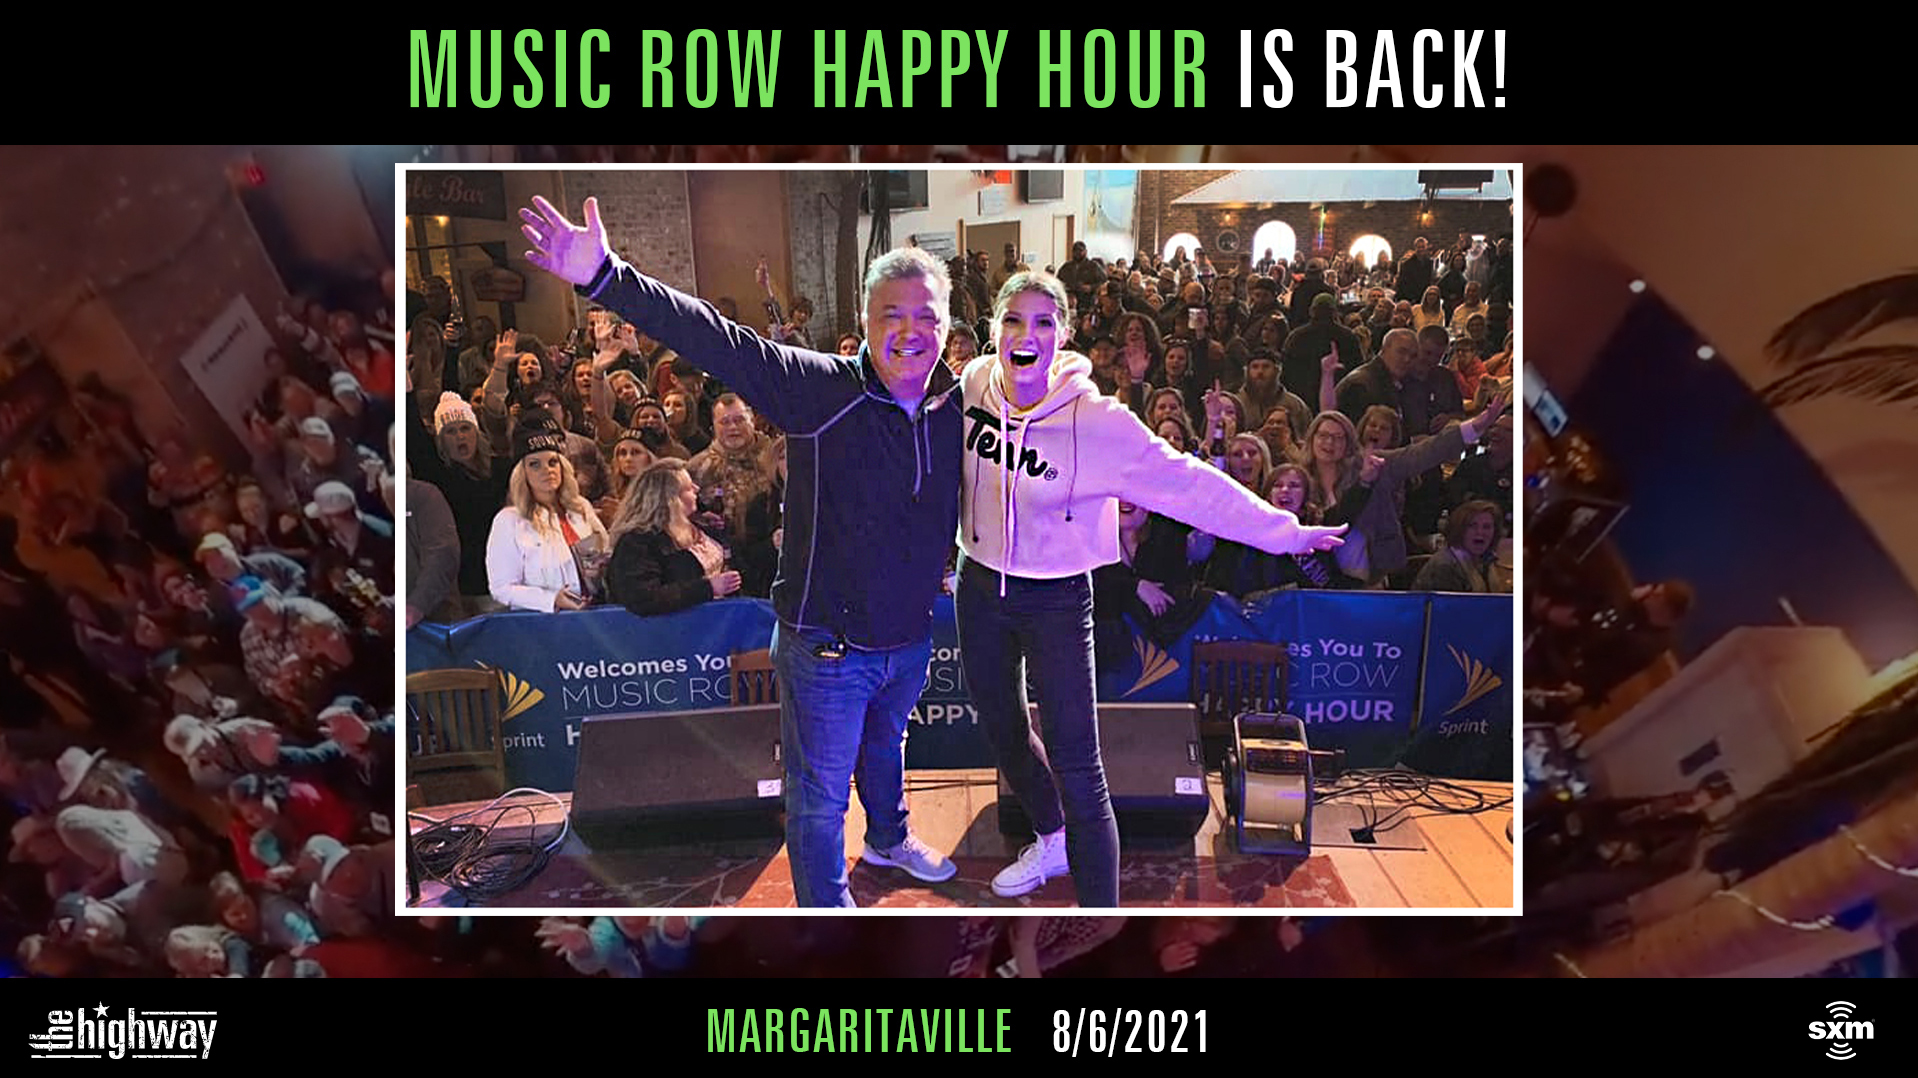 Attend the 'Music Row Happy Hour' in person as it returns to Jimmy Buffett's Margaritaville